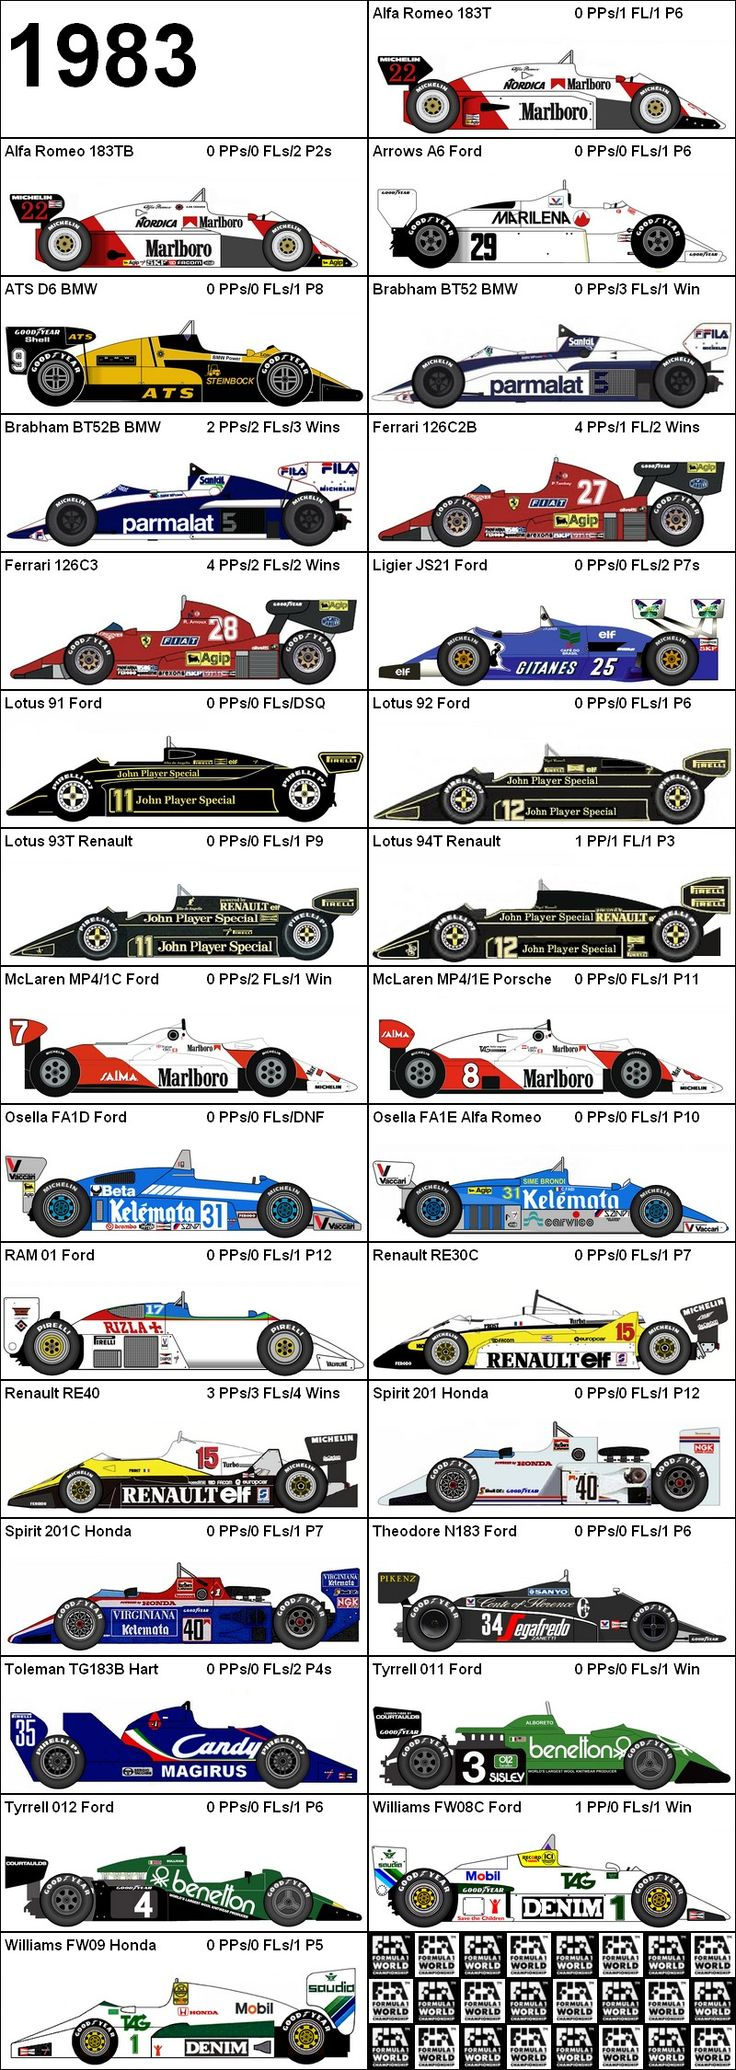 Formula One Grand Prix 1983 Cars.  So many different teams won!  Not like today.